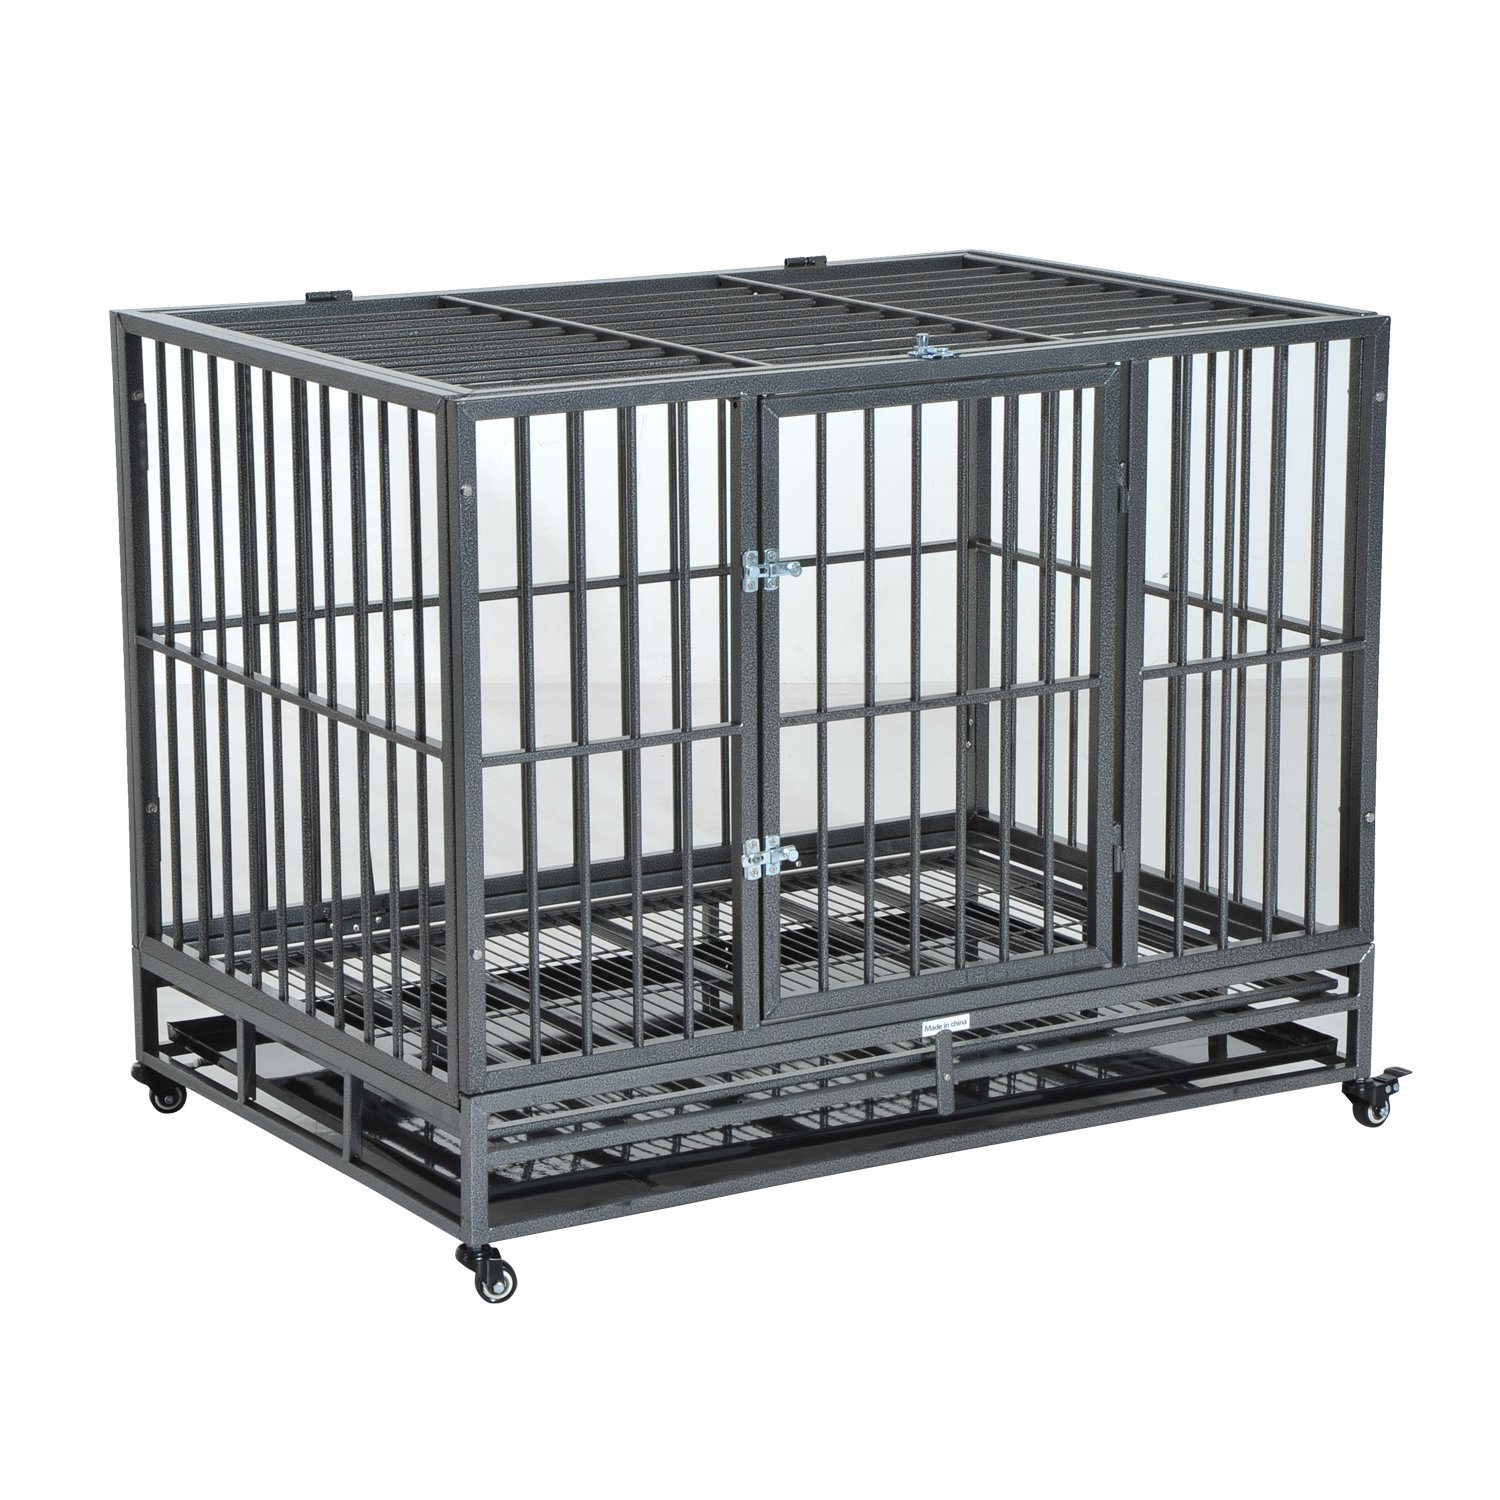 PawHut 42'' Heavy Duty Steel Dog Crate Kennel Pet Cage w/Wheels - Grey Vein